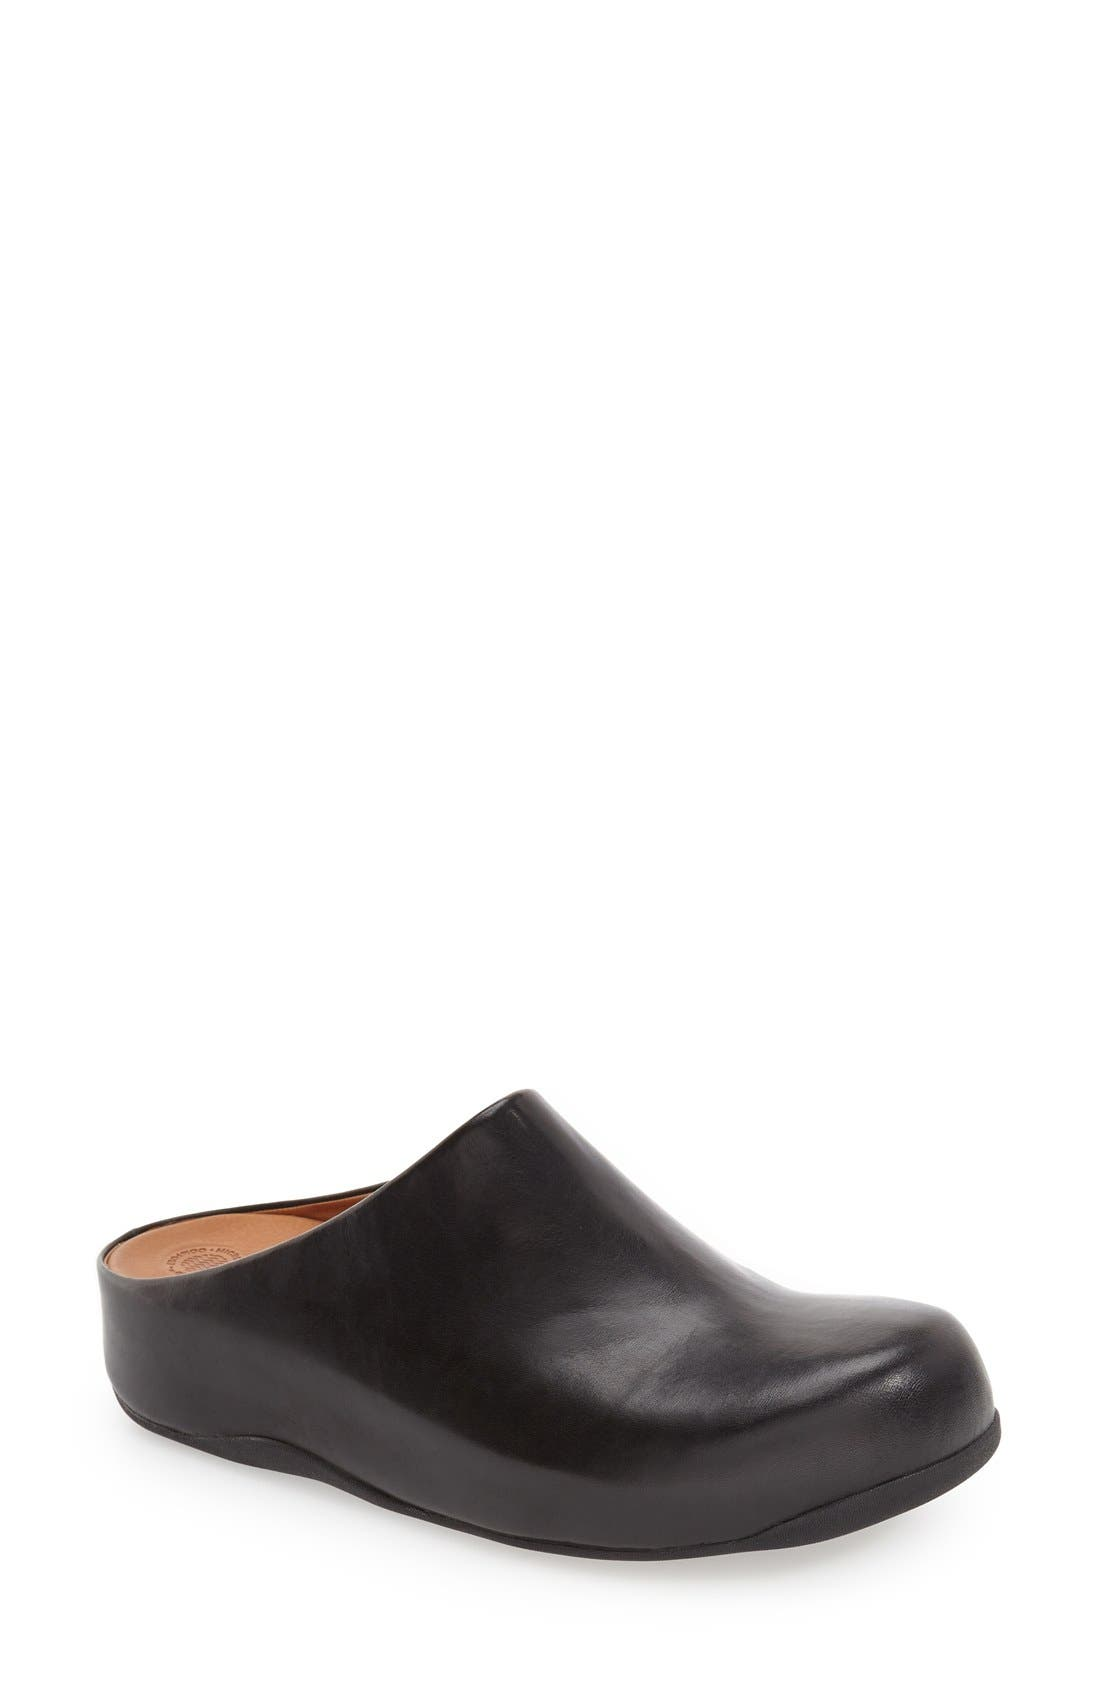 Alternate Image 1 Selected - FitFlop 'Shuv™' Leather Clog